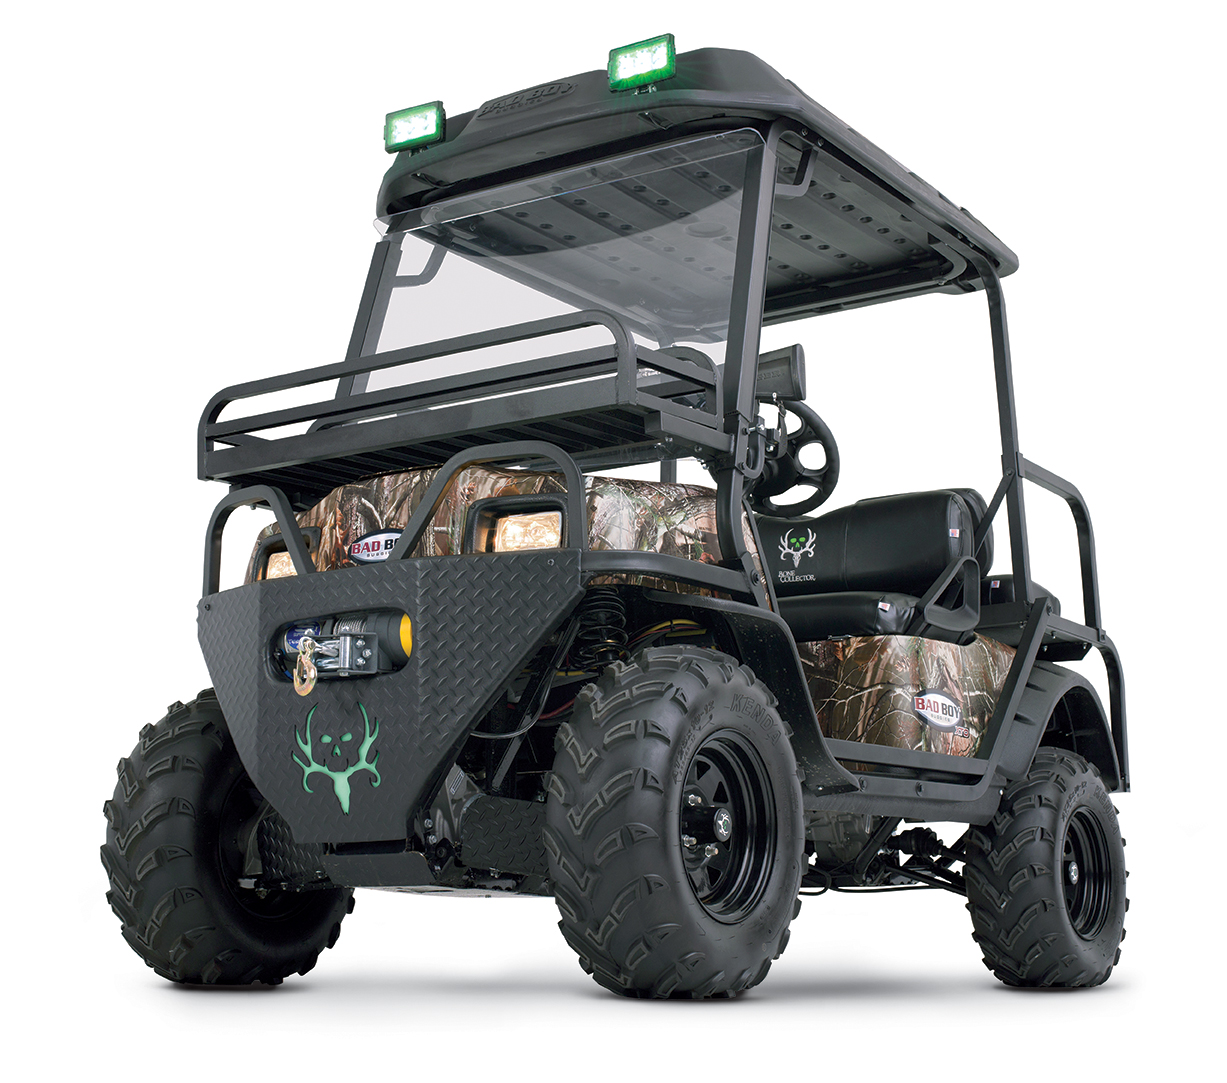 2011 Bad Boy Buggy Wiring Diagram Library Bass Textron Specialized Vehicles Recalls Off Road Utility 2006 Ez Go